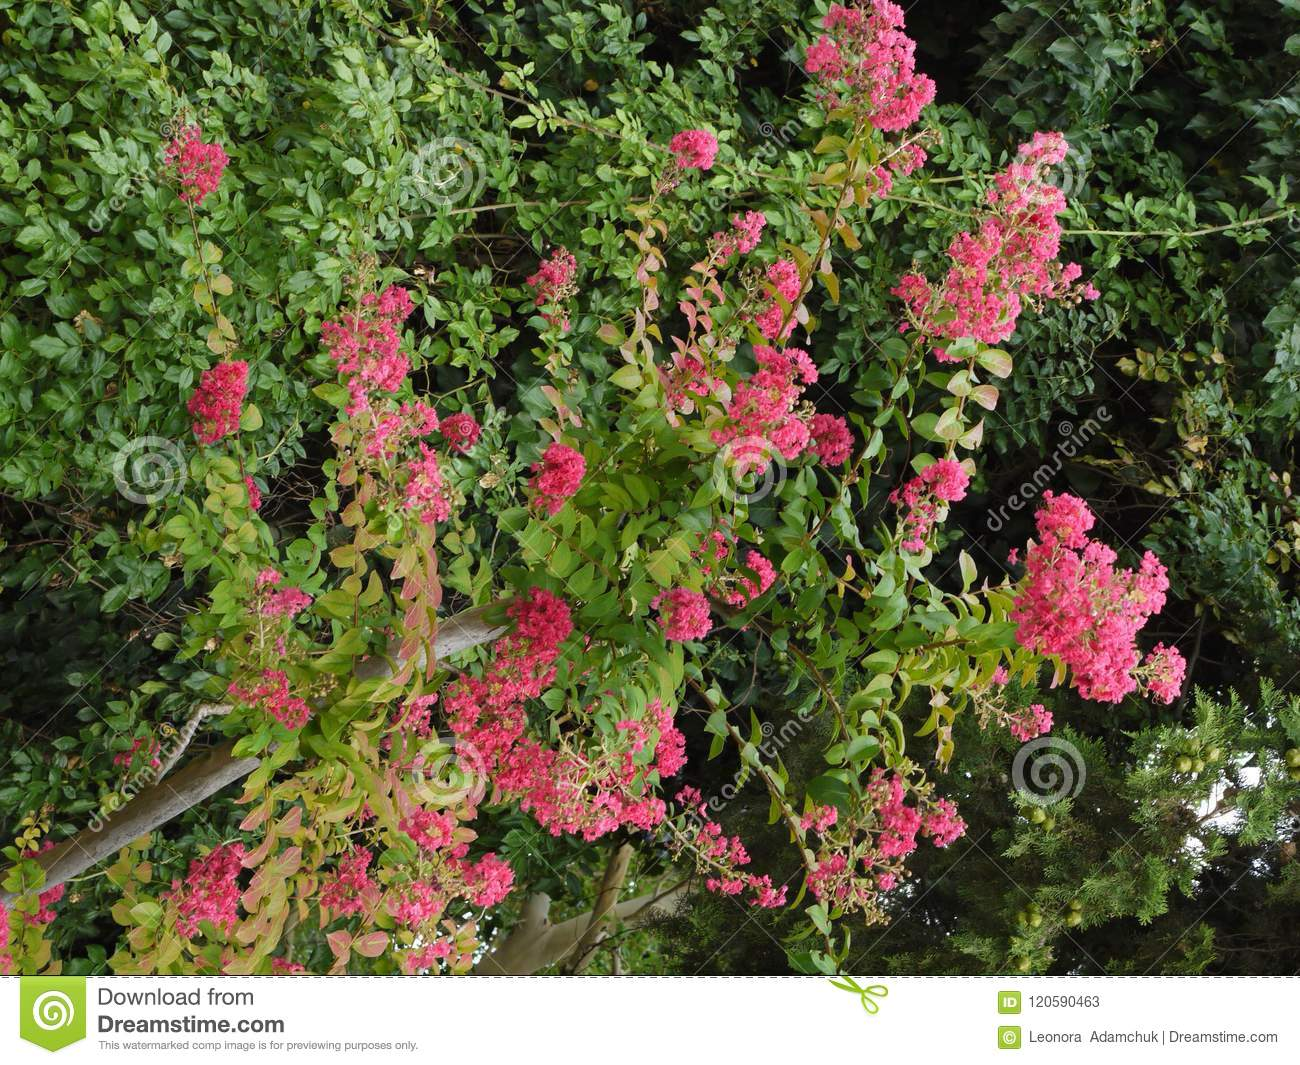 Pink Flowers On Bushes With Small Green Leaves Behind A Wooden Fence